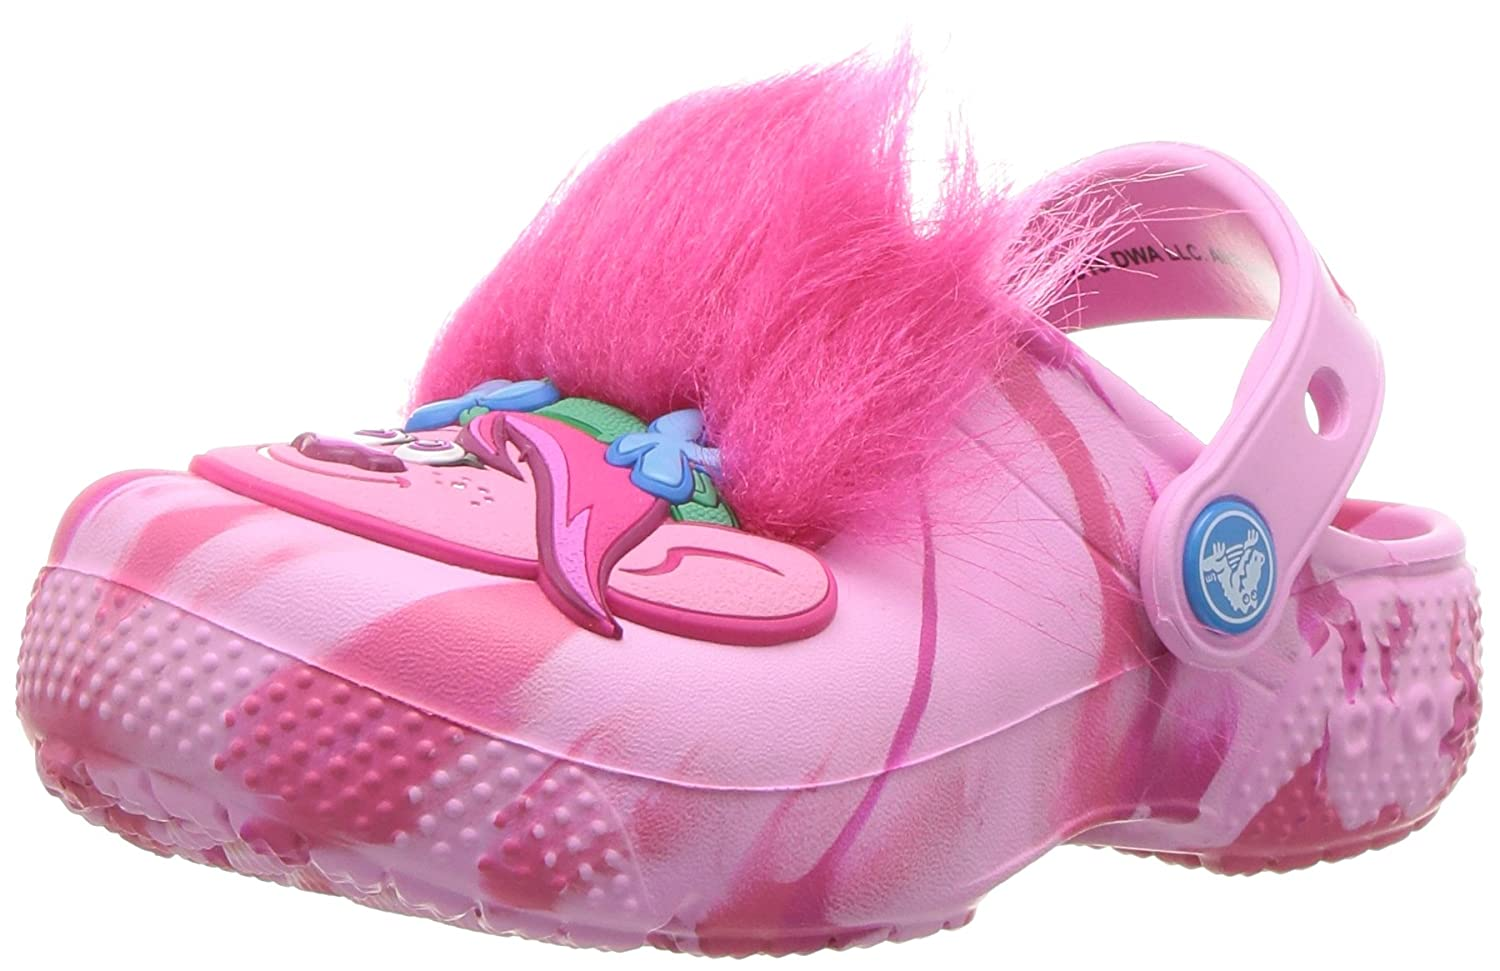 Crocs unisex Kids' Fun Lab Trolls Clog , party pink , 1 M US Little Kid 205297-6U9